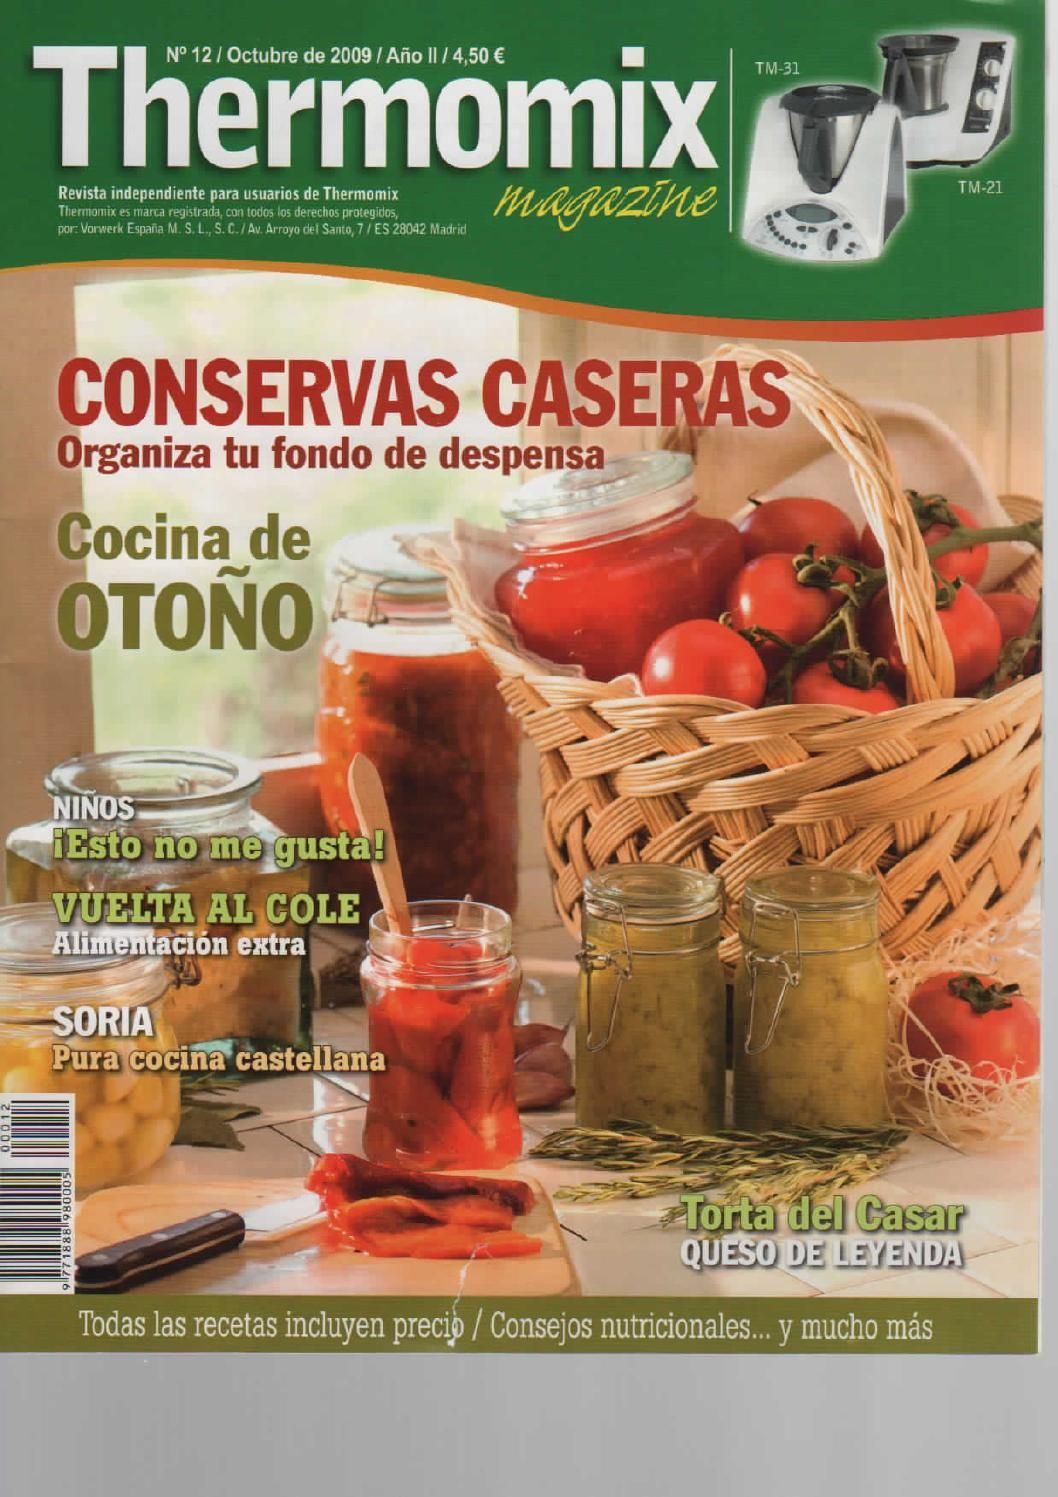 Libros Electronicos Thermomix Issuu Revista Thermomix Nº12 Conservas Caseras De Argent